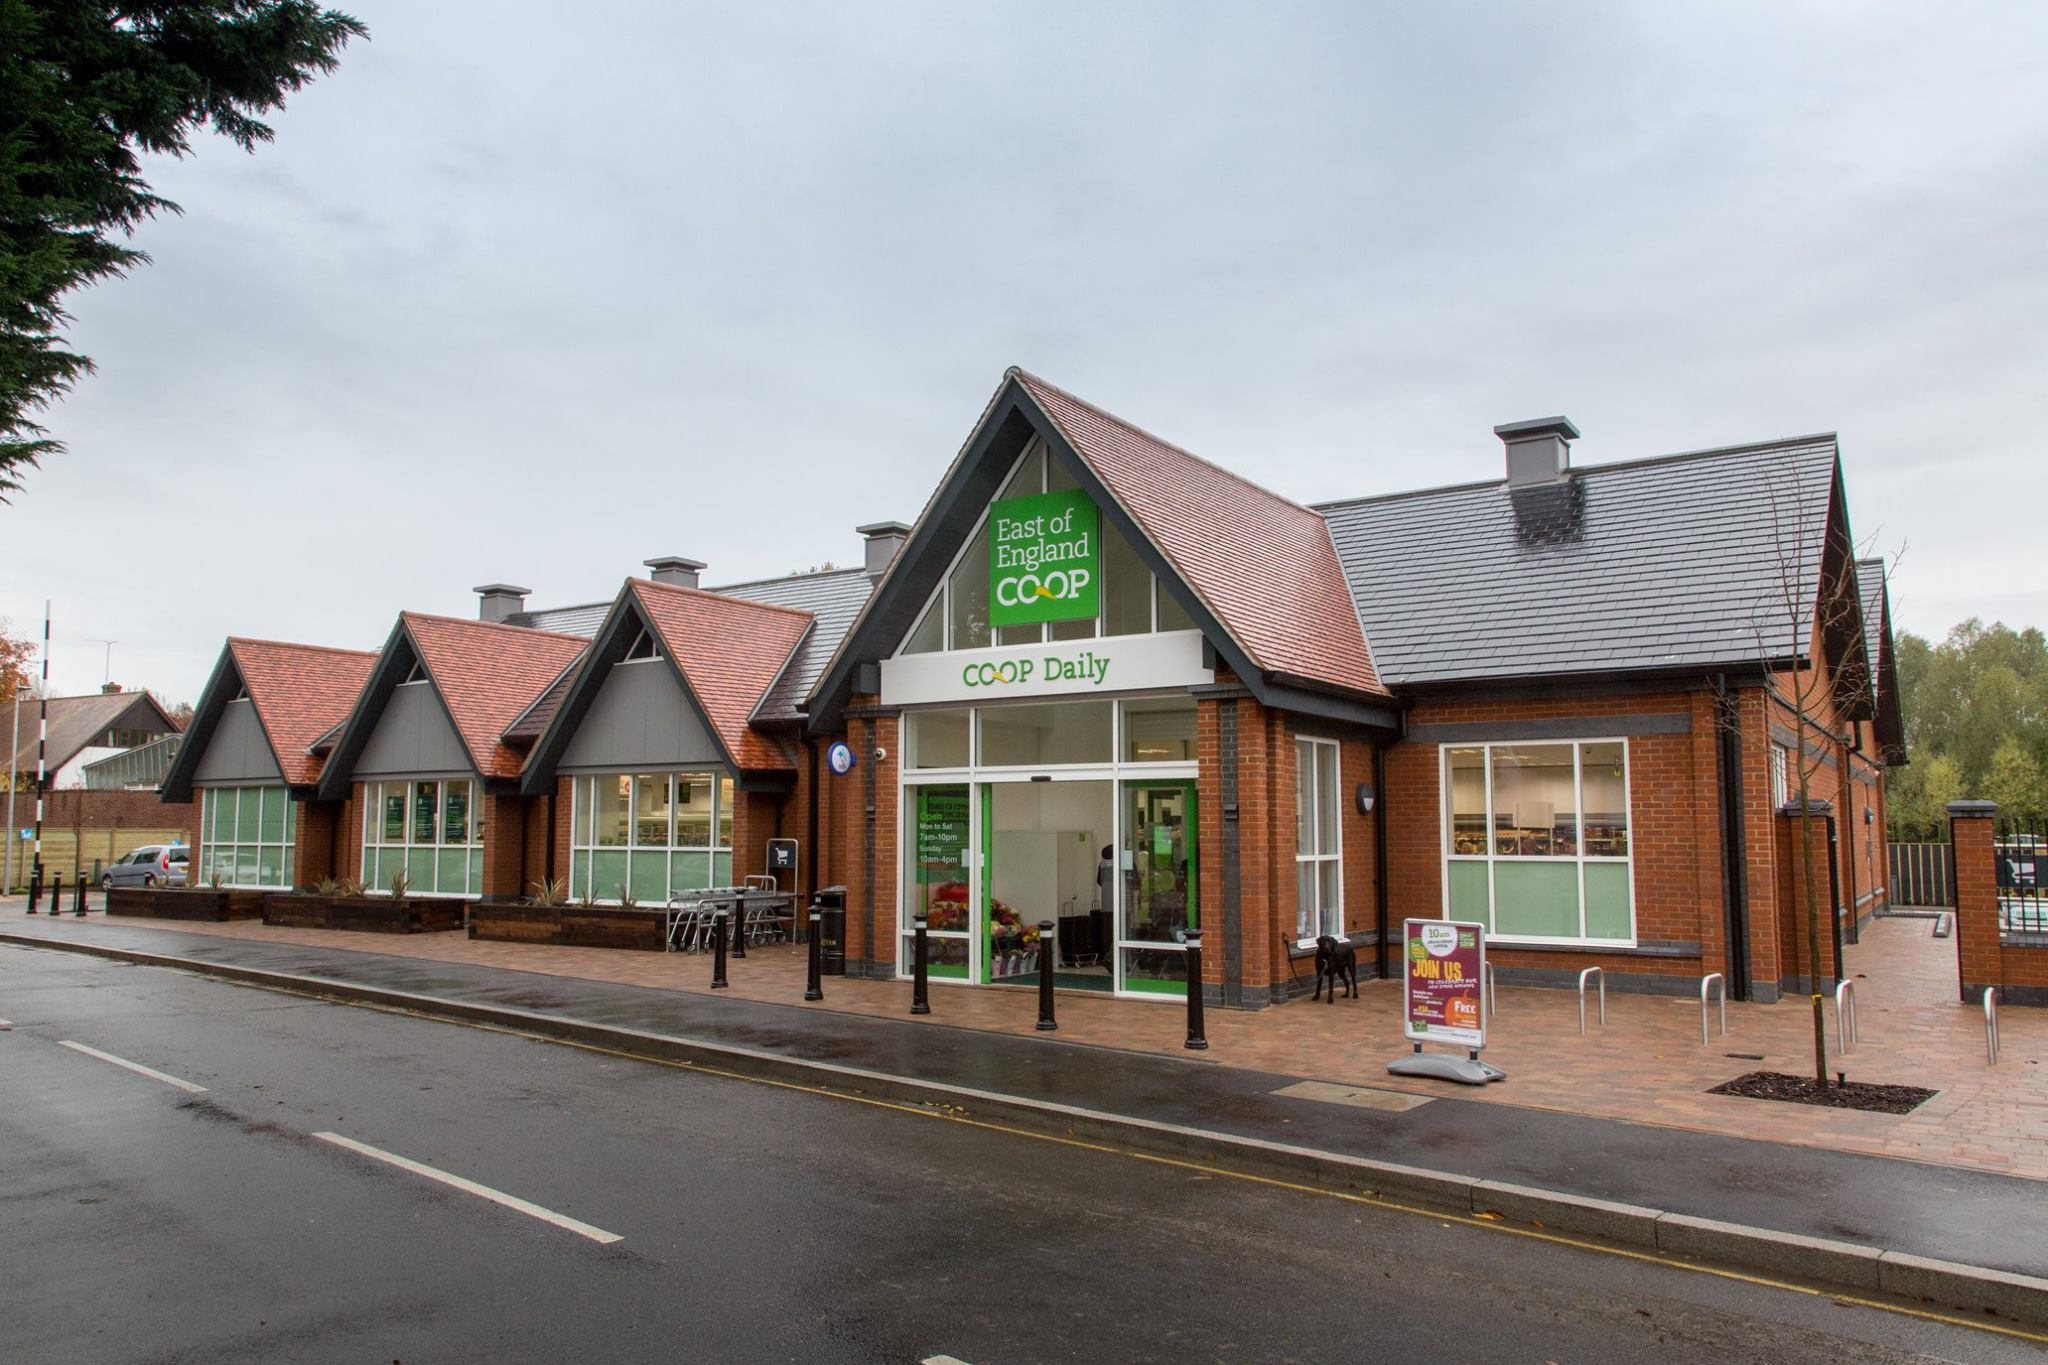 East of England credits its successful Christmas trading period to its local convenience offer